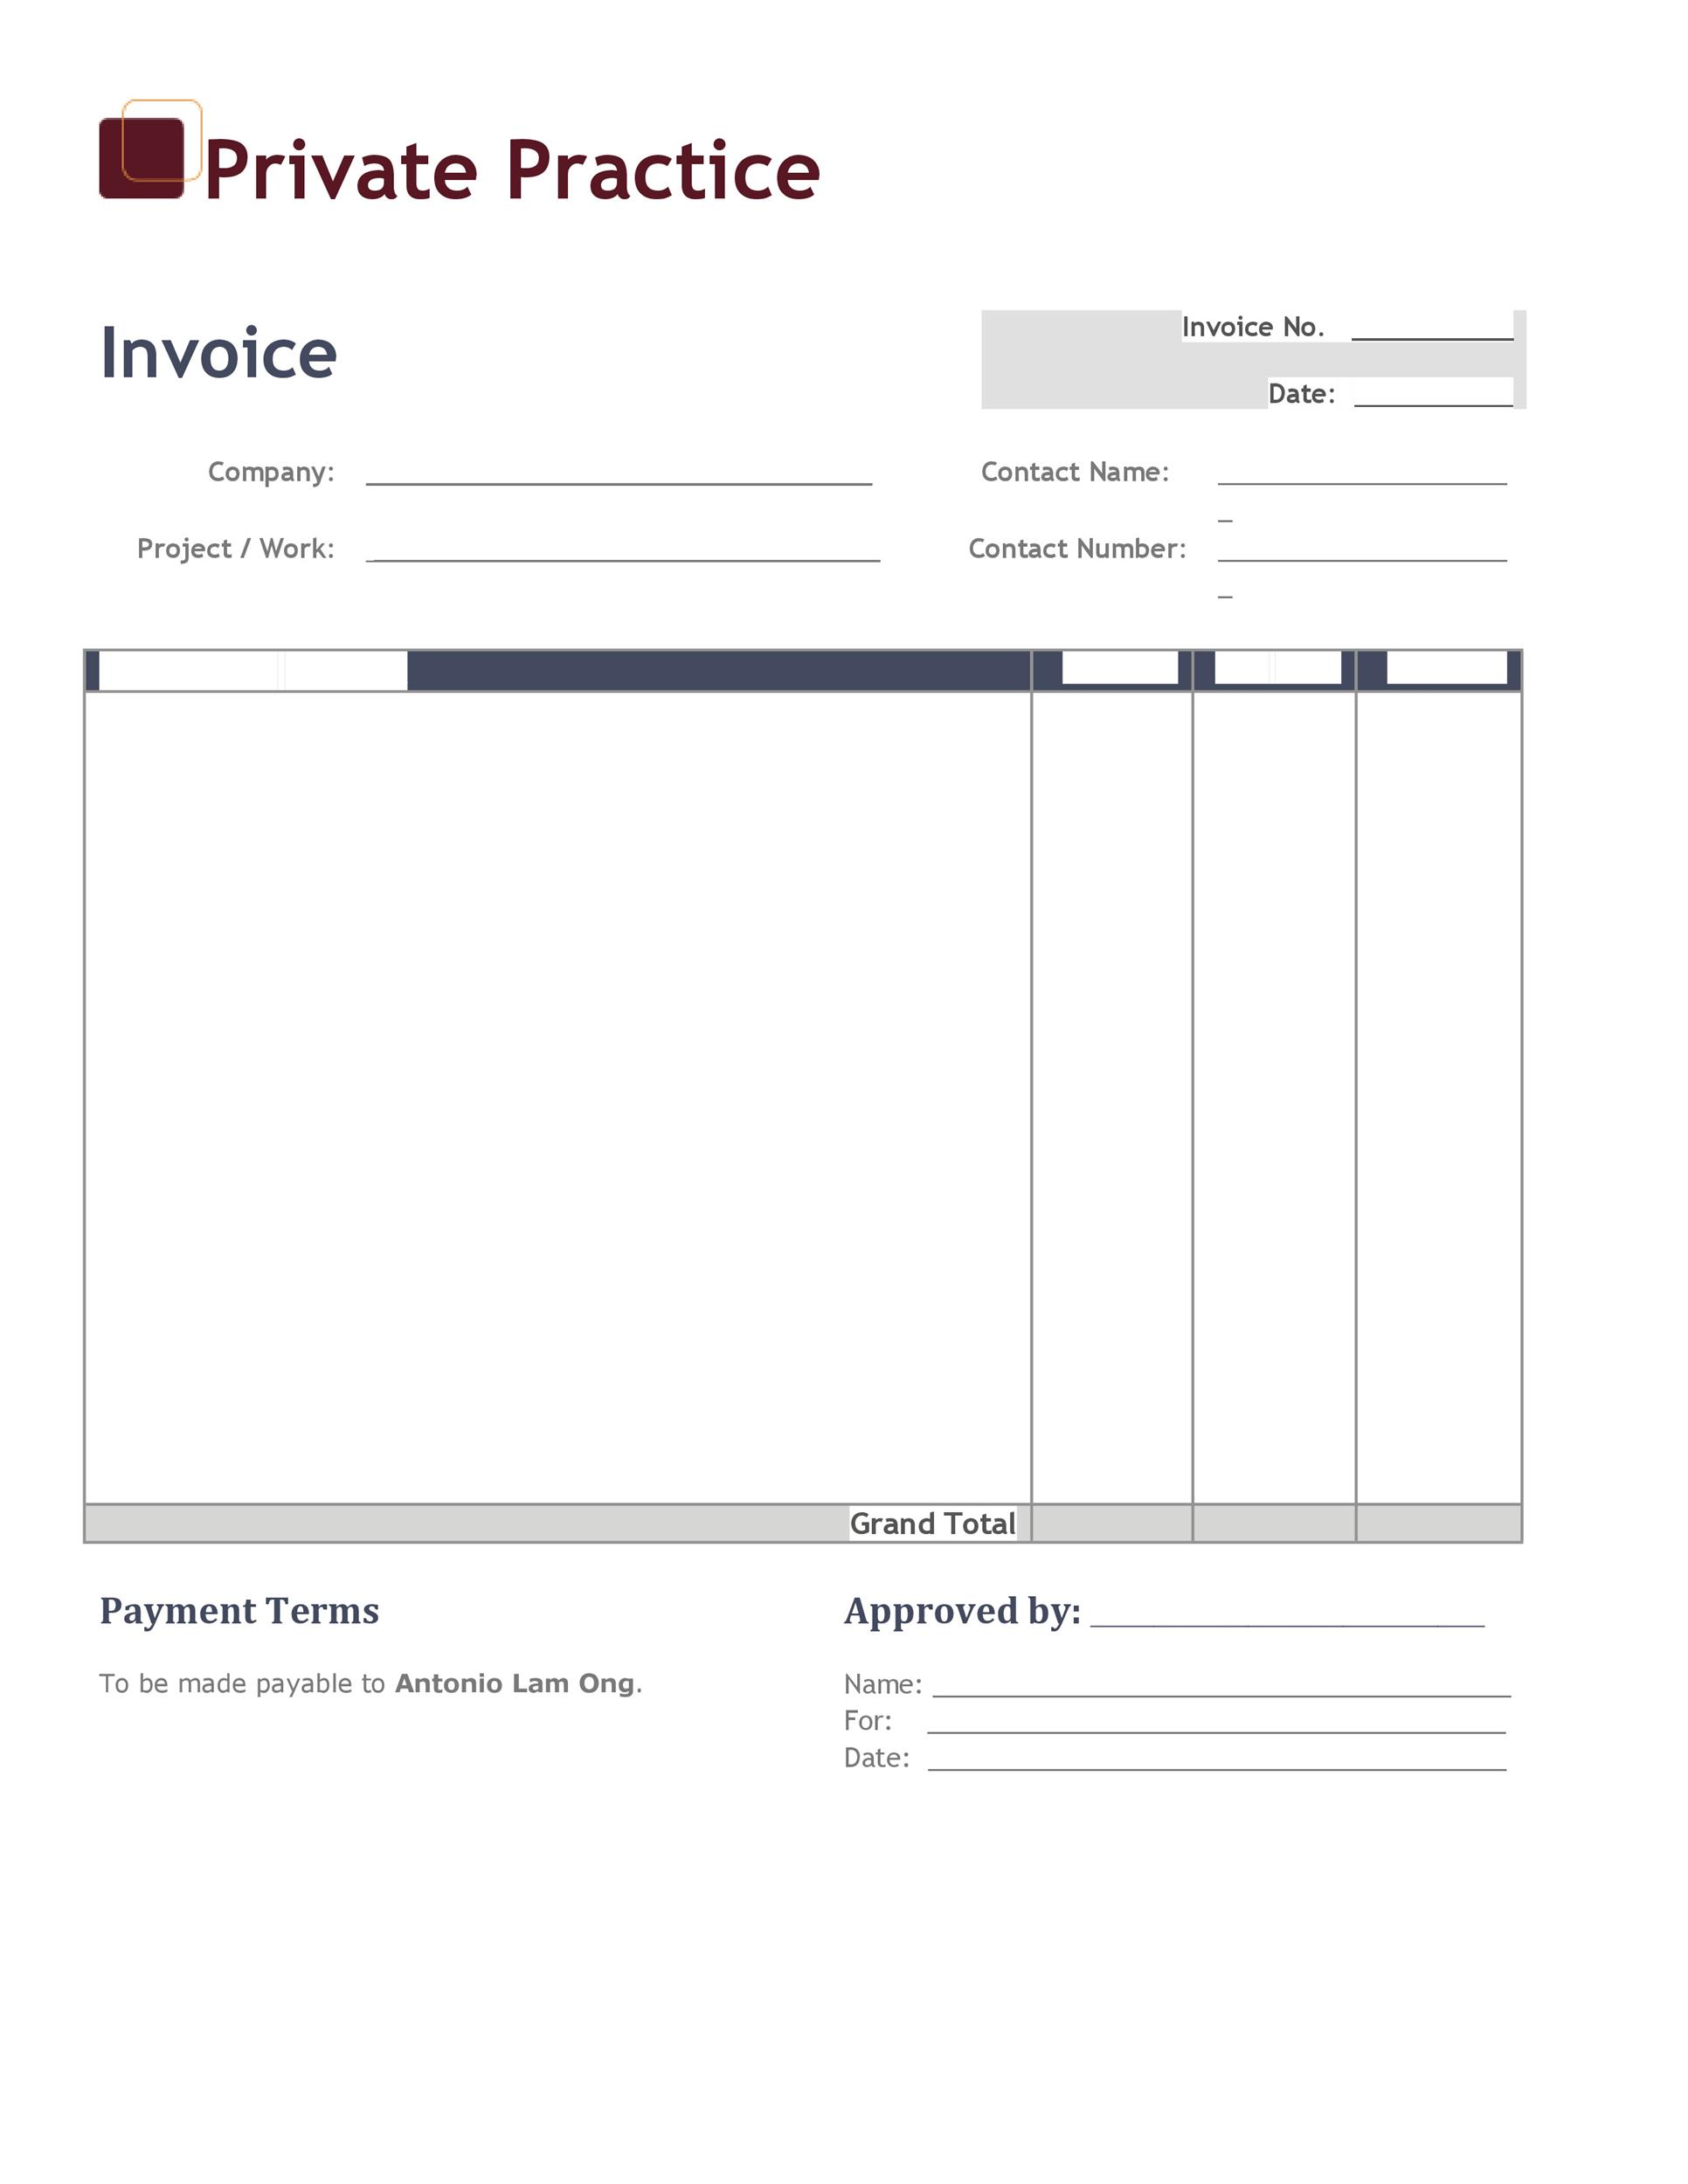 Printable Invoice Template 02  Copy Of Blank Invoice